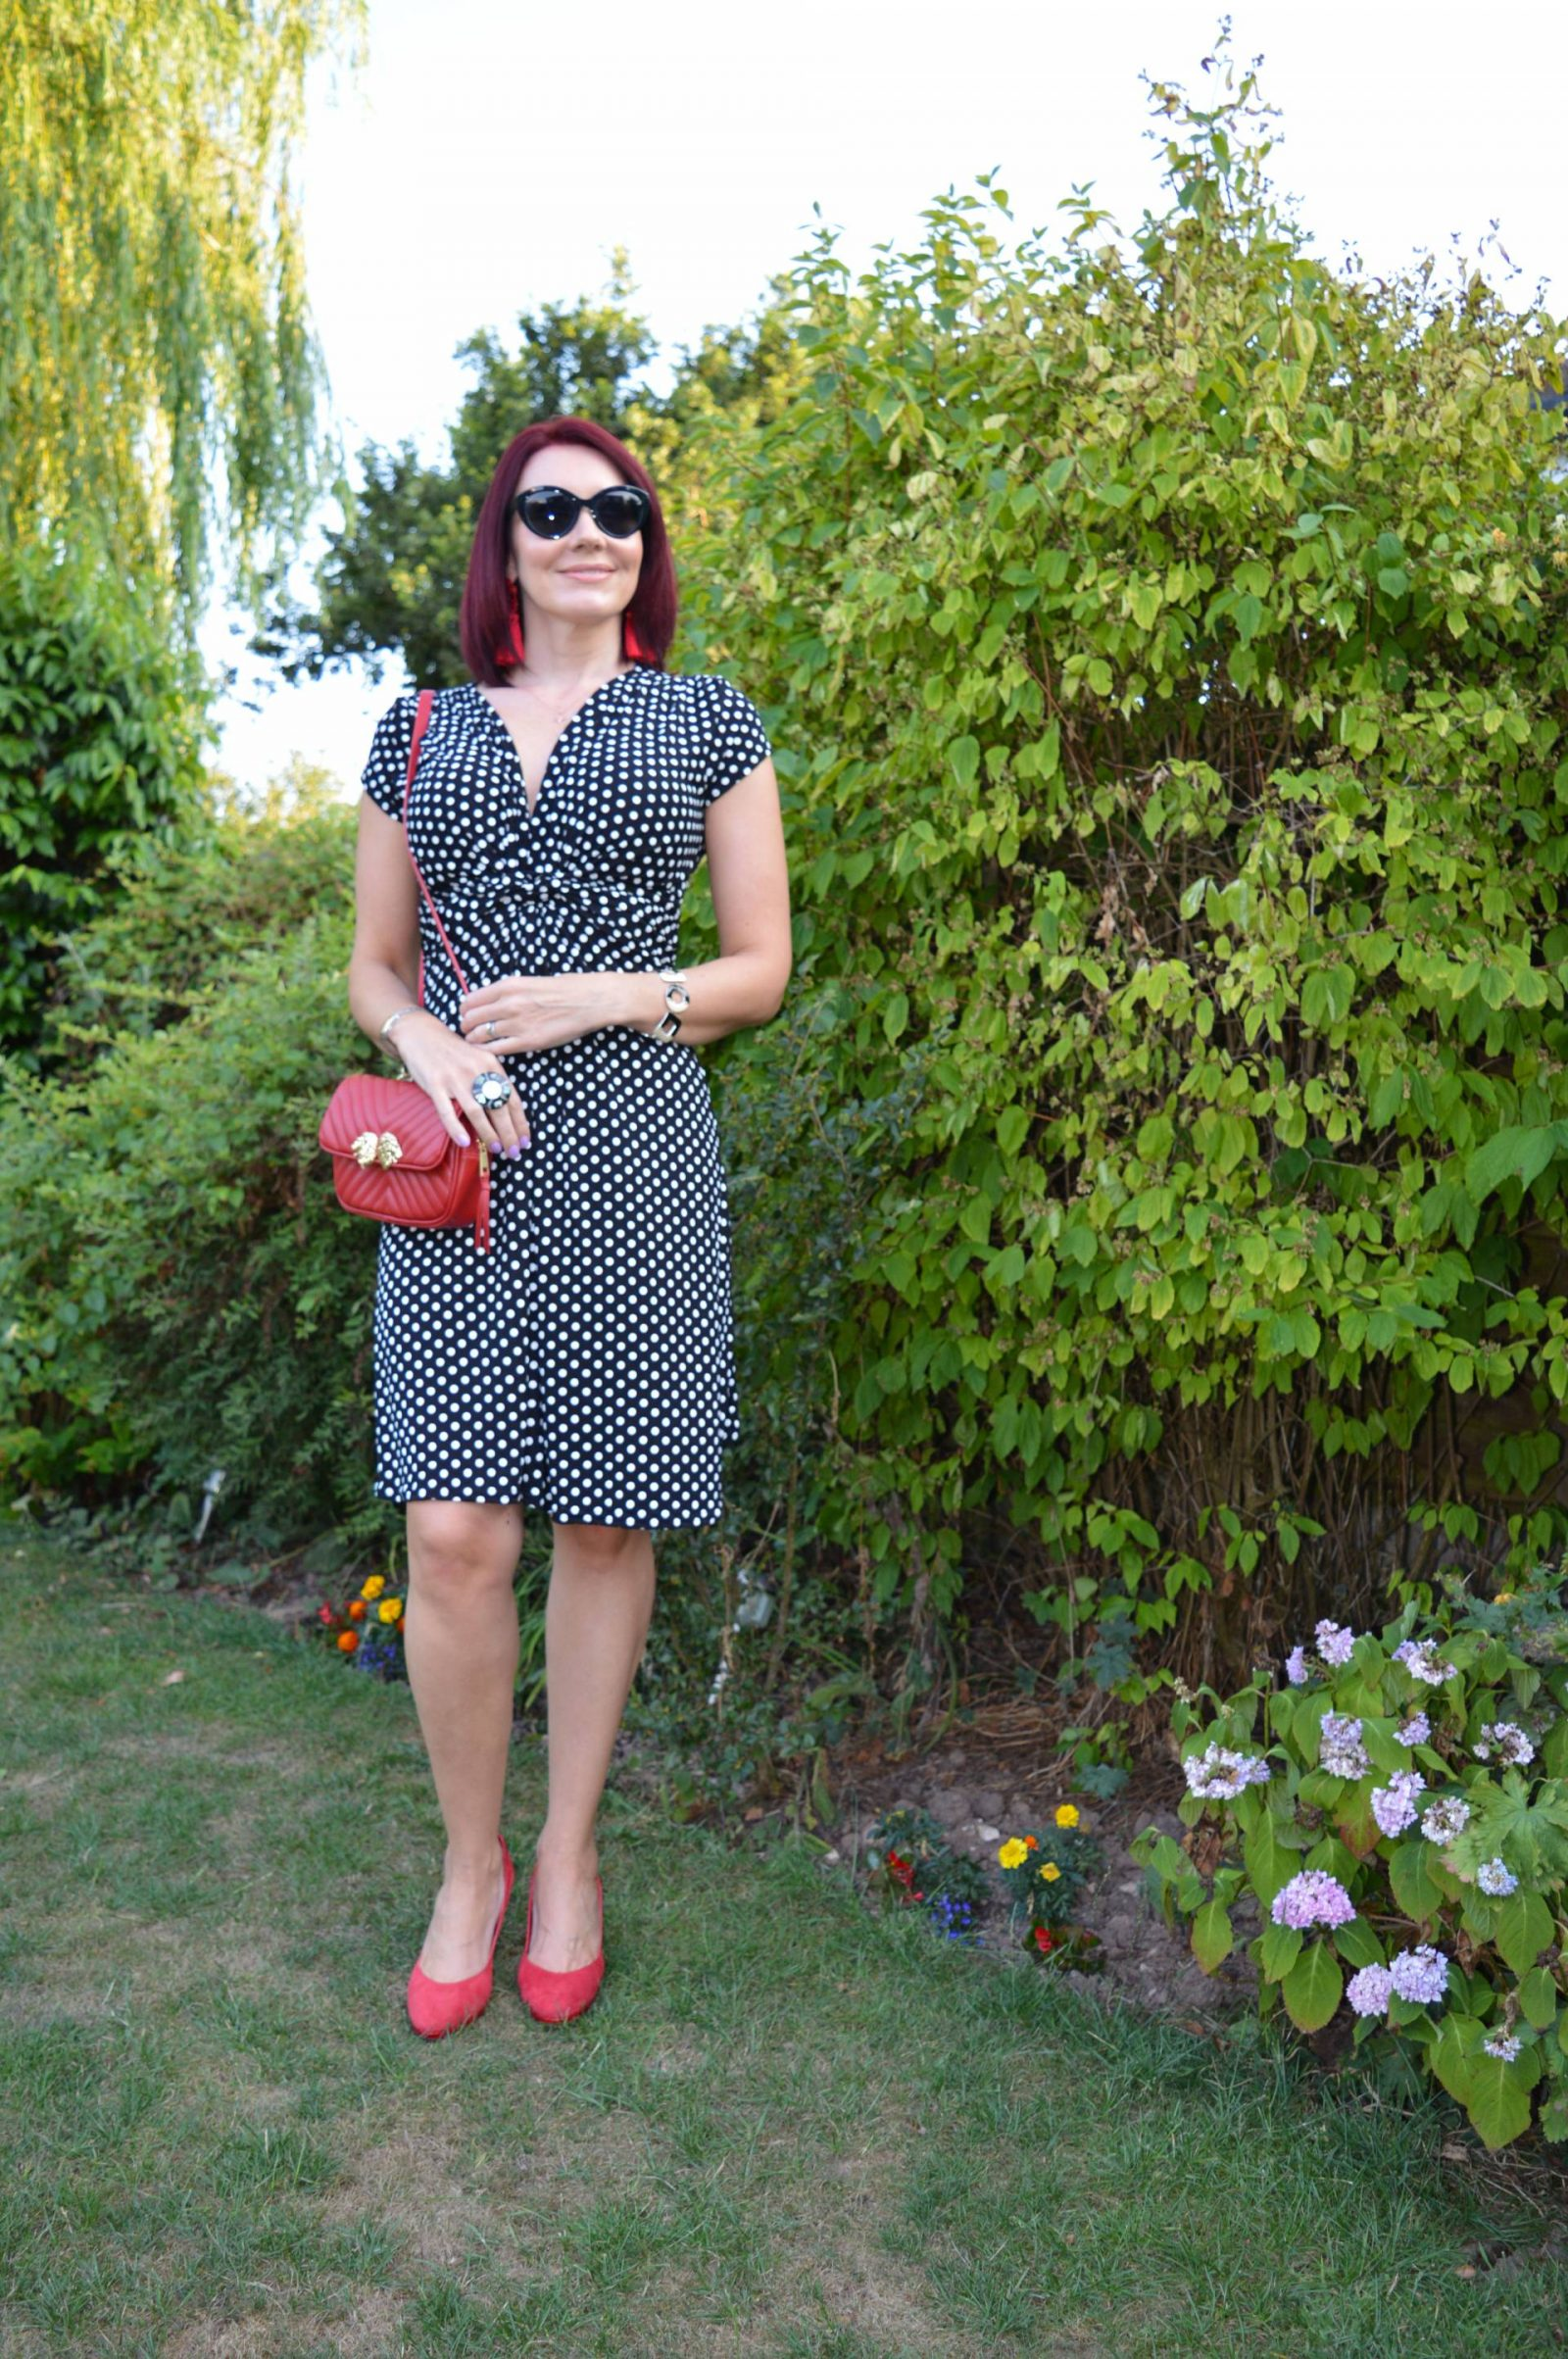 Krisp polka dot dress